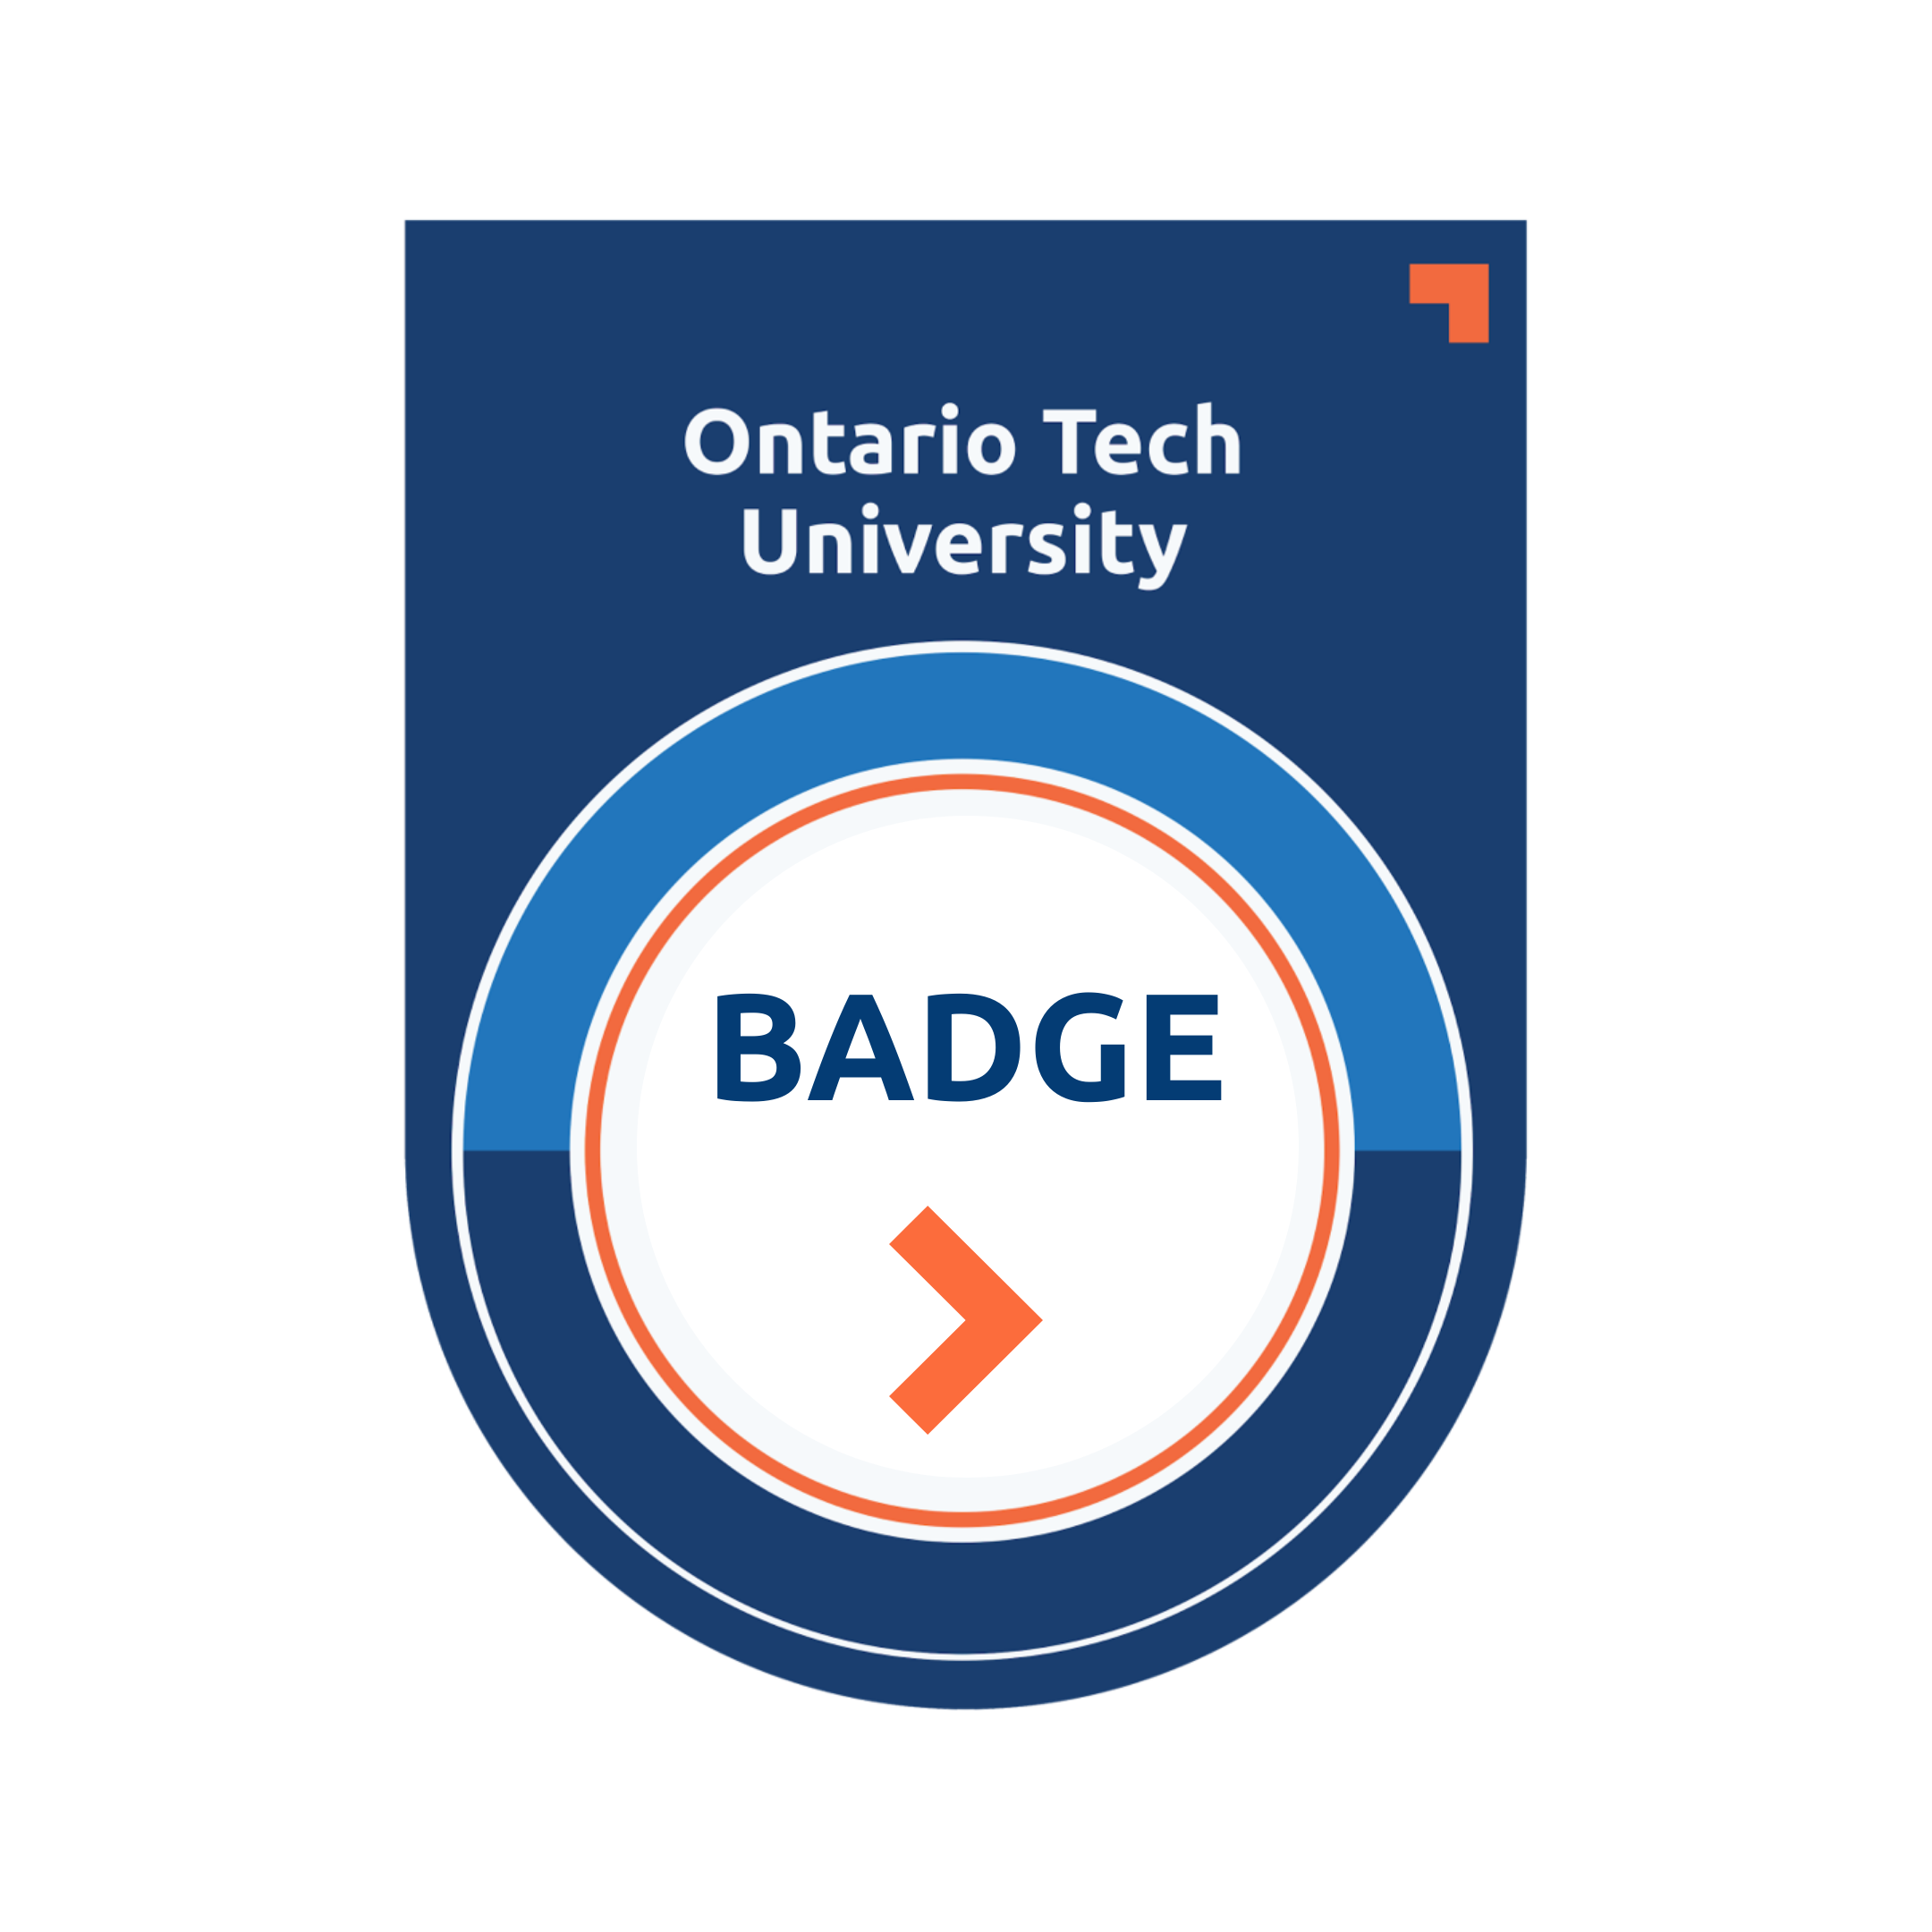 An Ontario Tech University Digital Badge